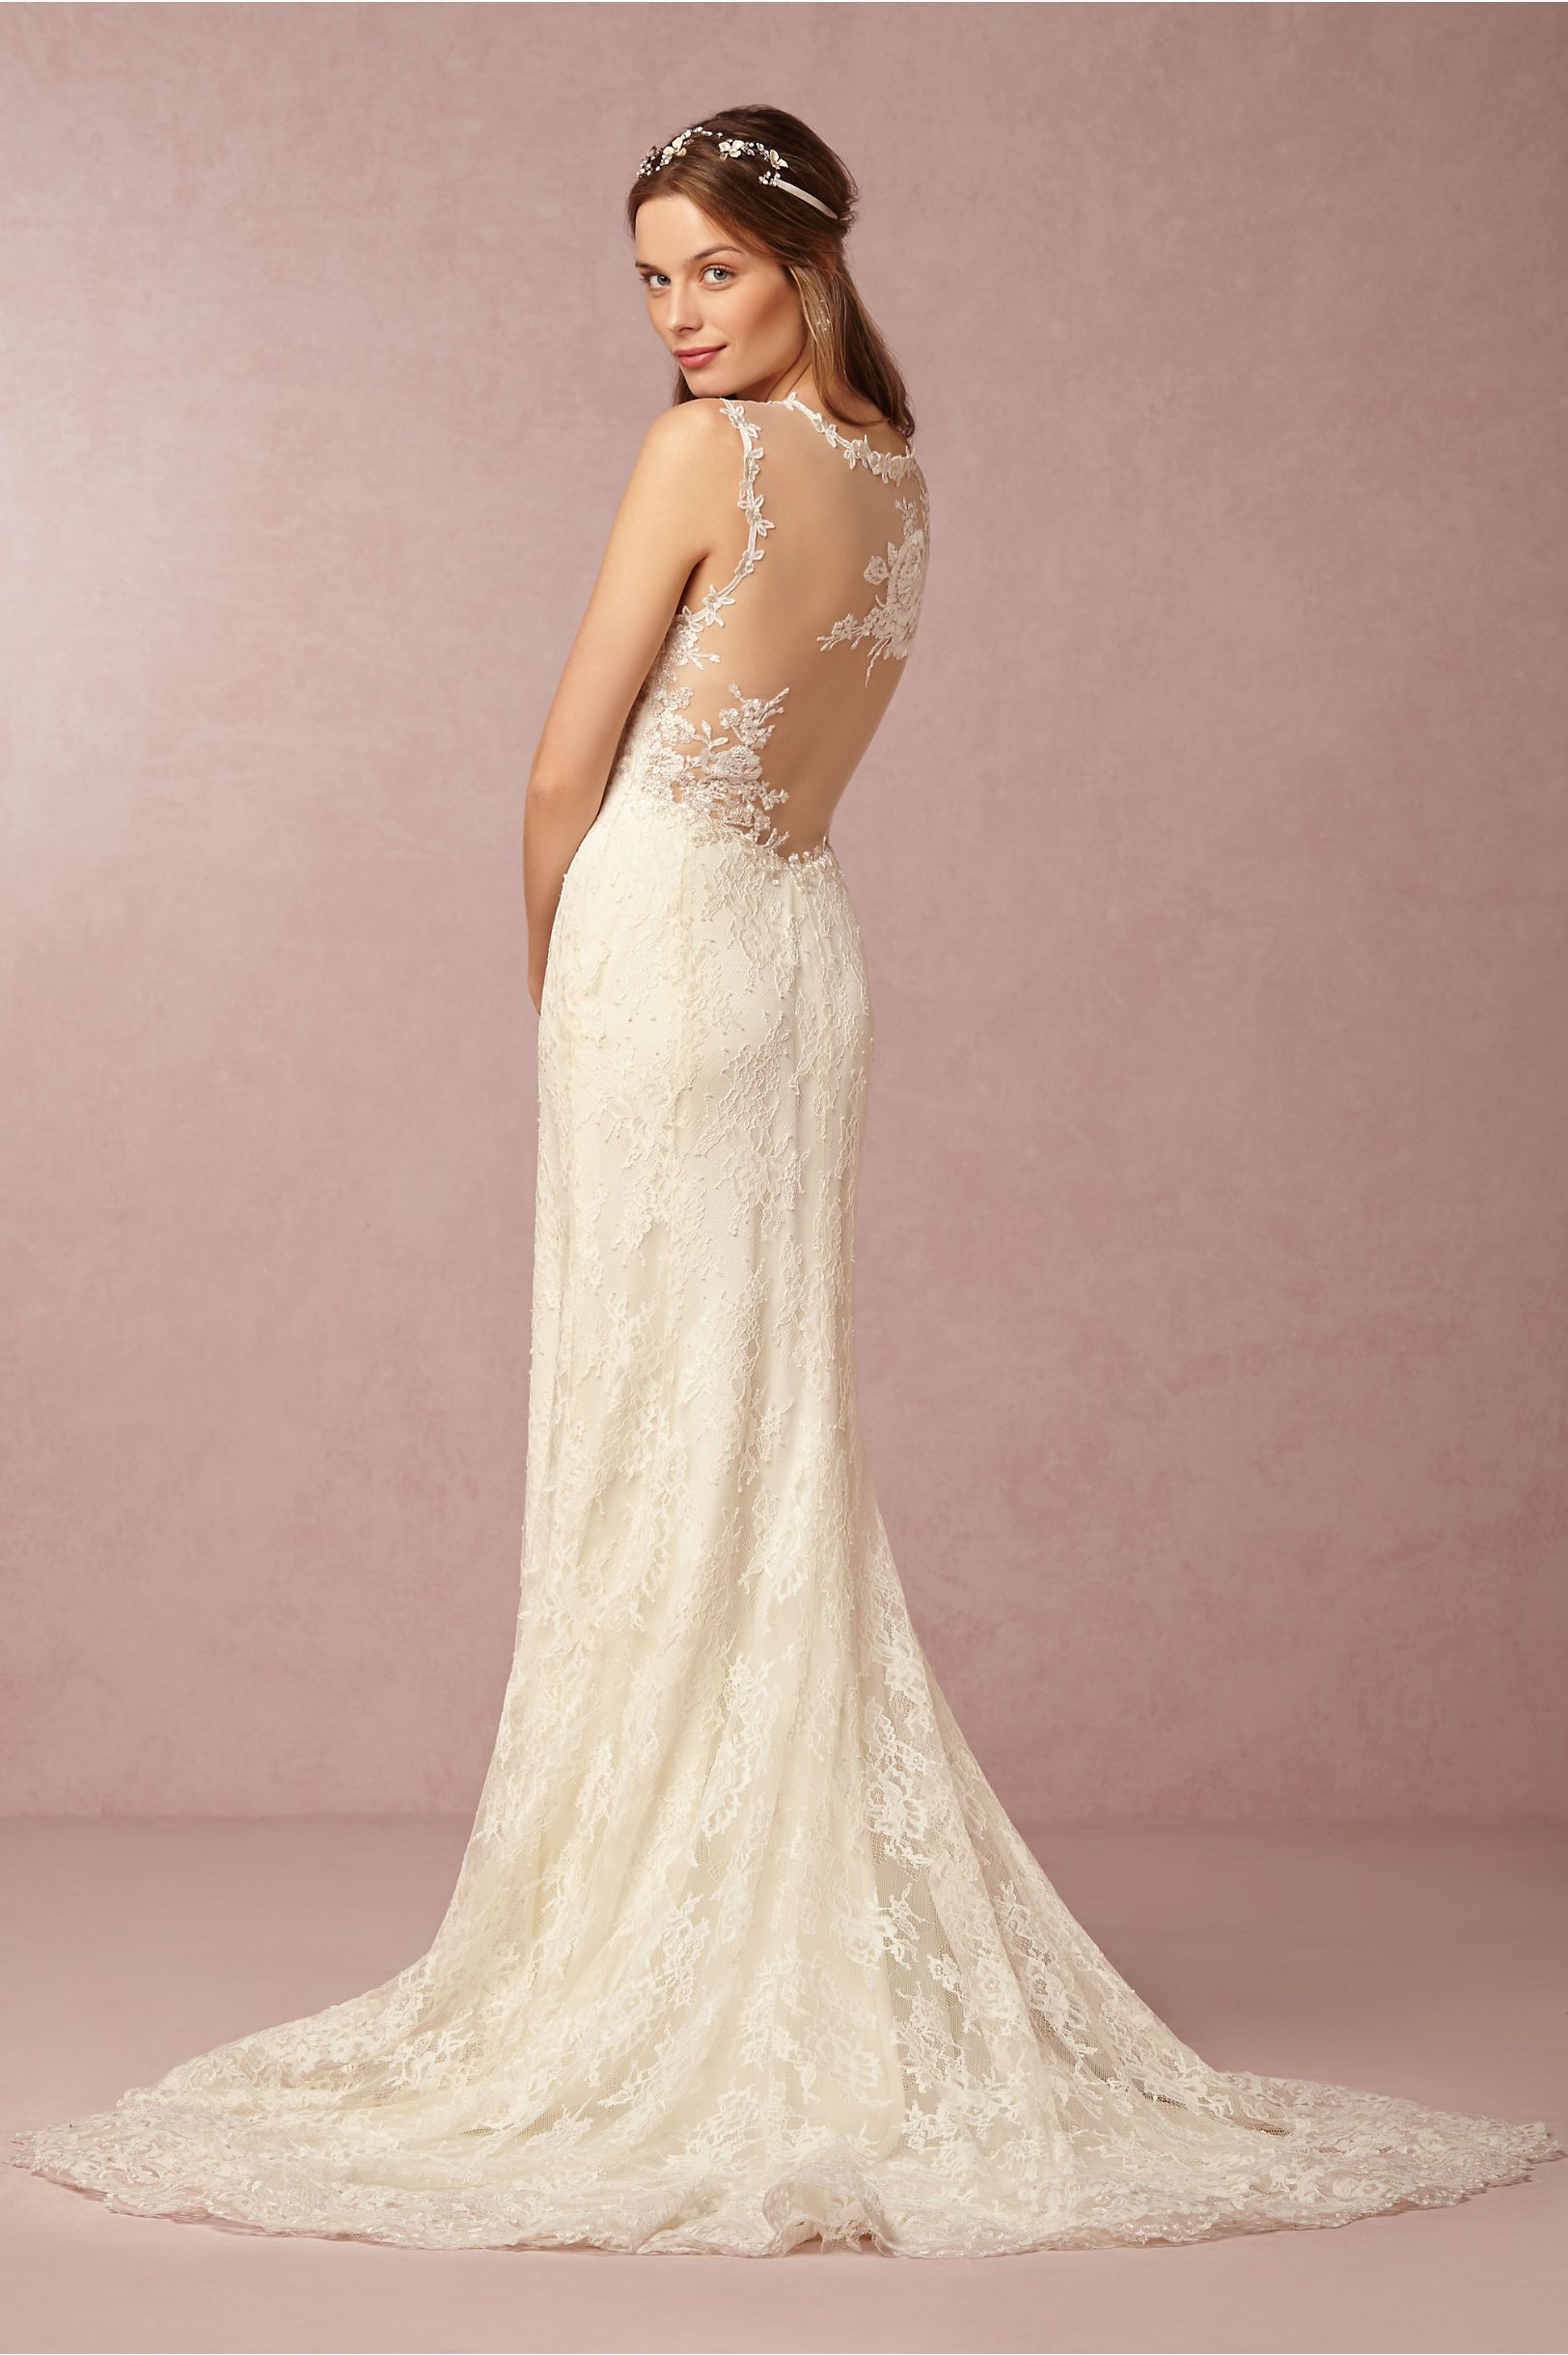 Briar Rose Gown from @BHLDN | wedding:) | Pinterest | Novios